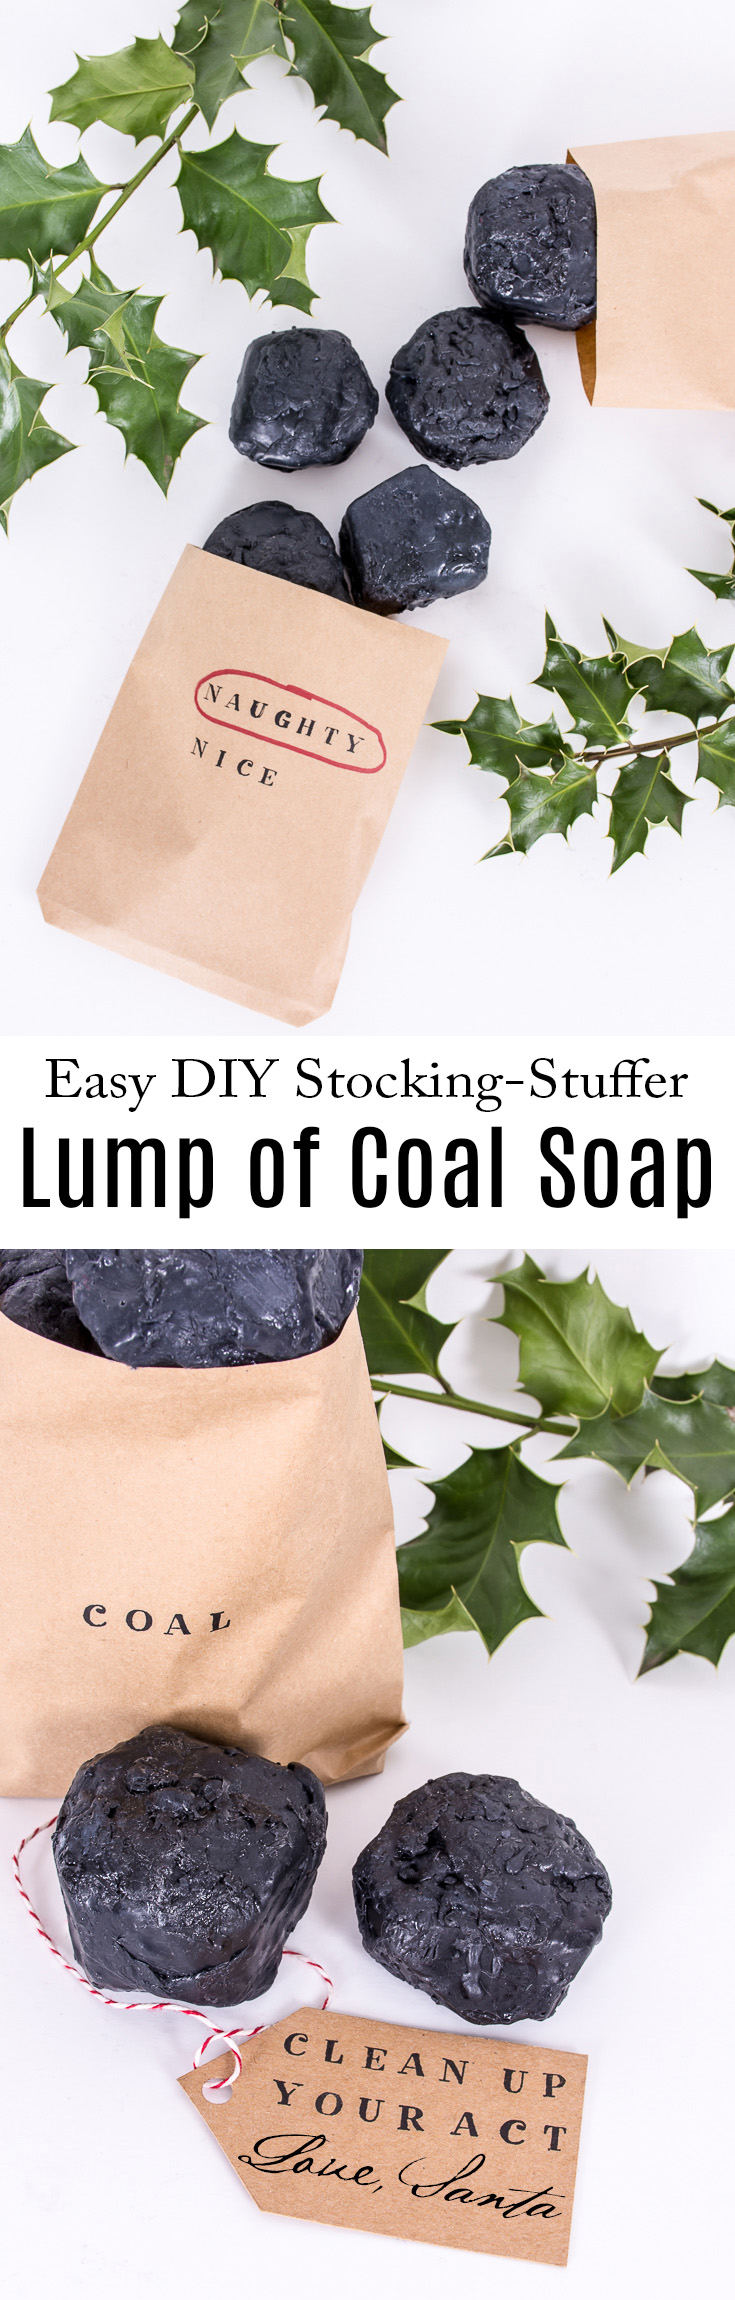 Make this lump of coal soap for that person who made it onto Santa's naughty list this year. #DIY #gift #holidays #Christmas #soap #DIYGift